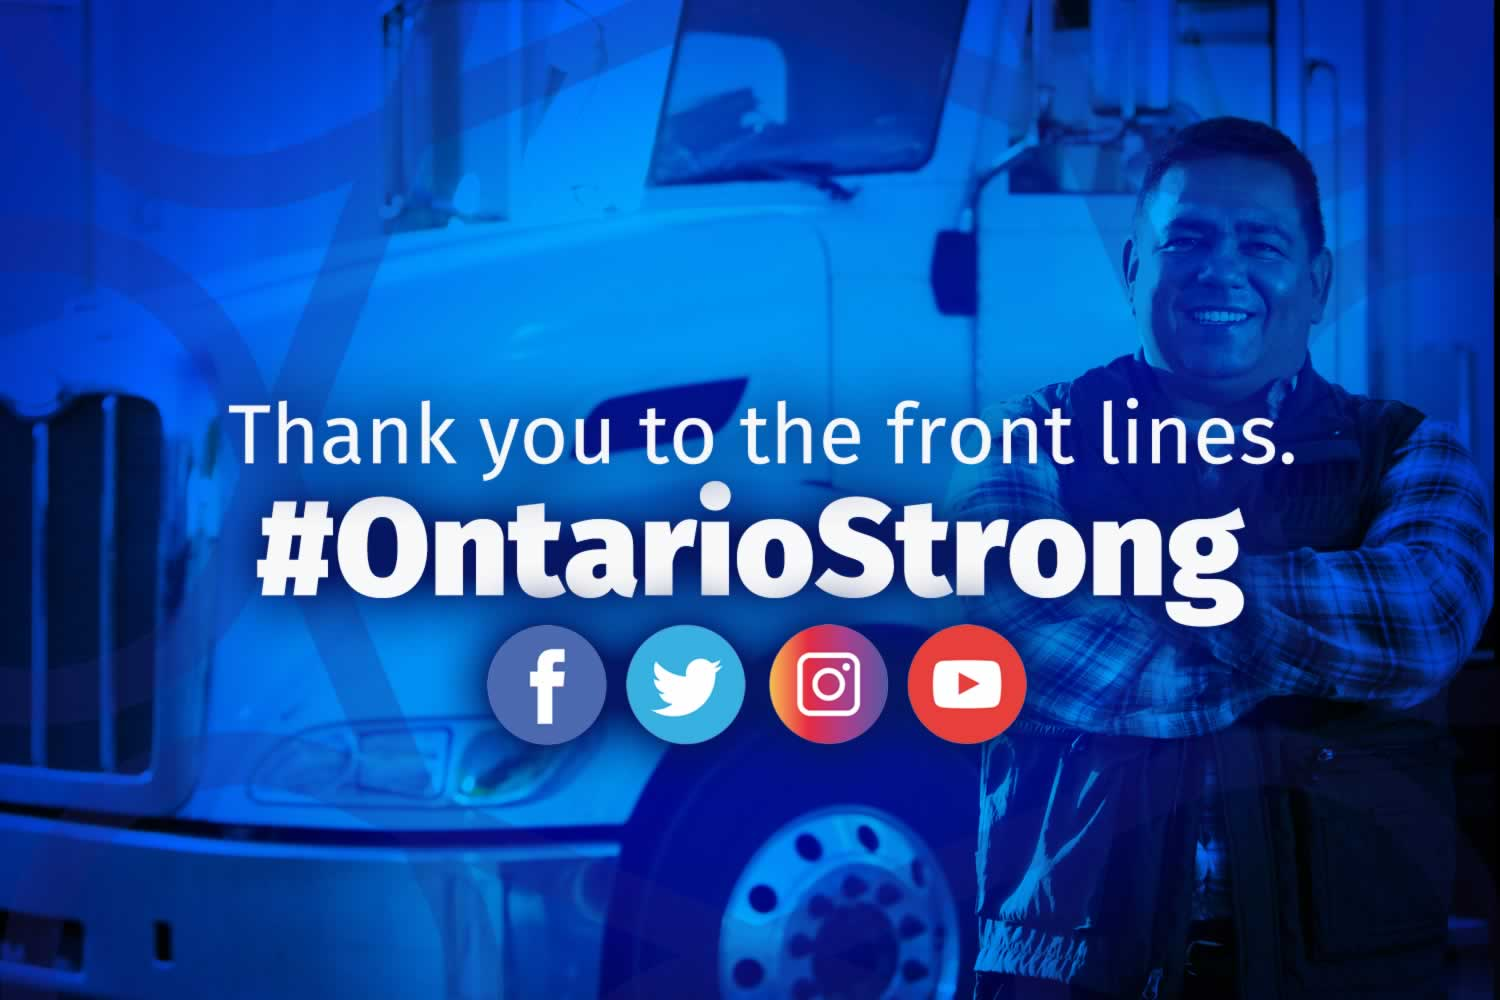 Thank you to the Front Lines: #OntarioStrong